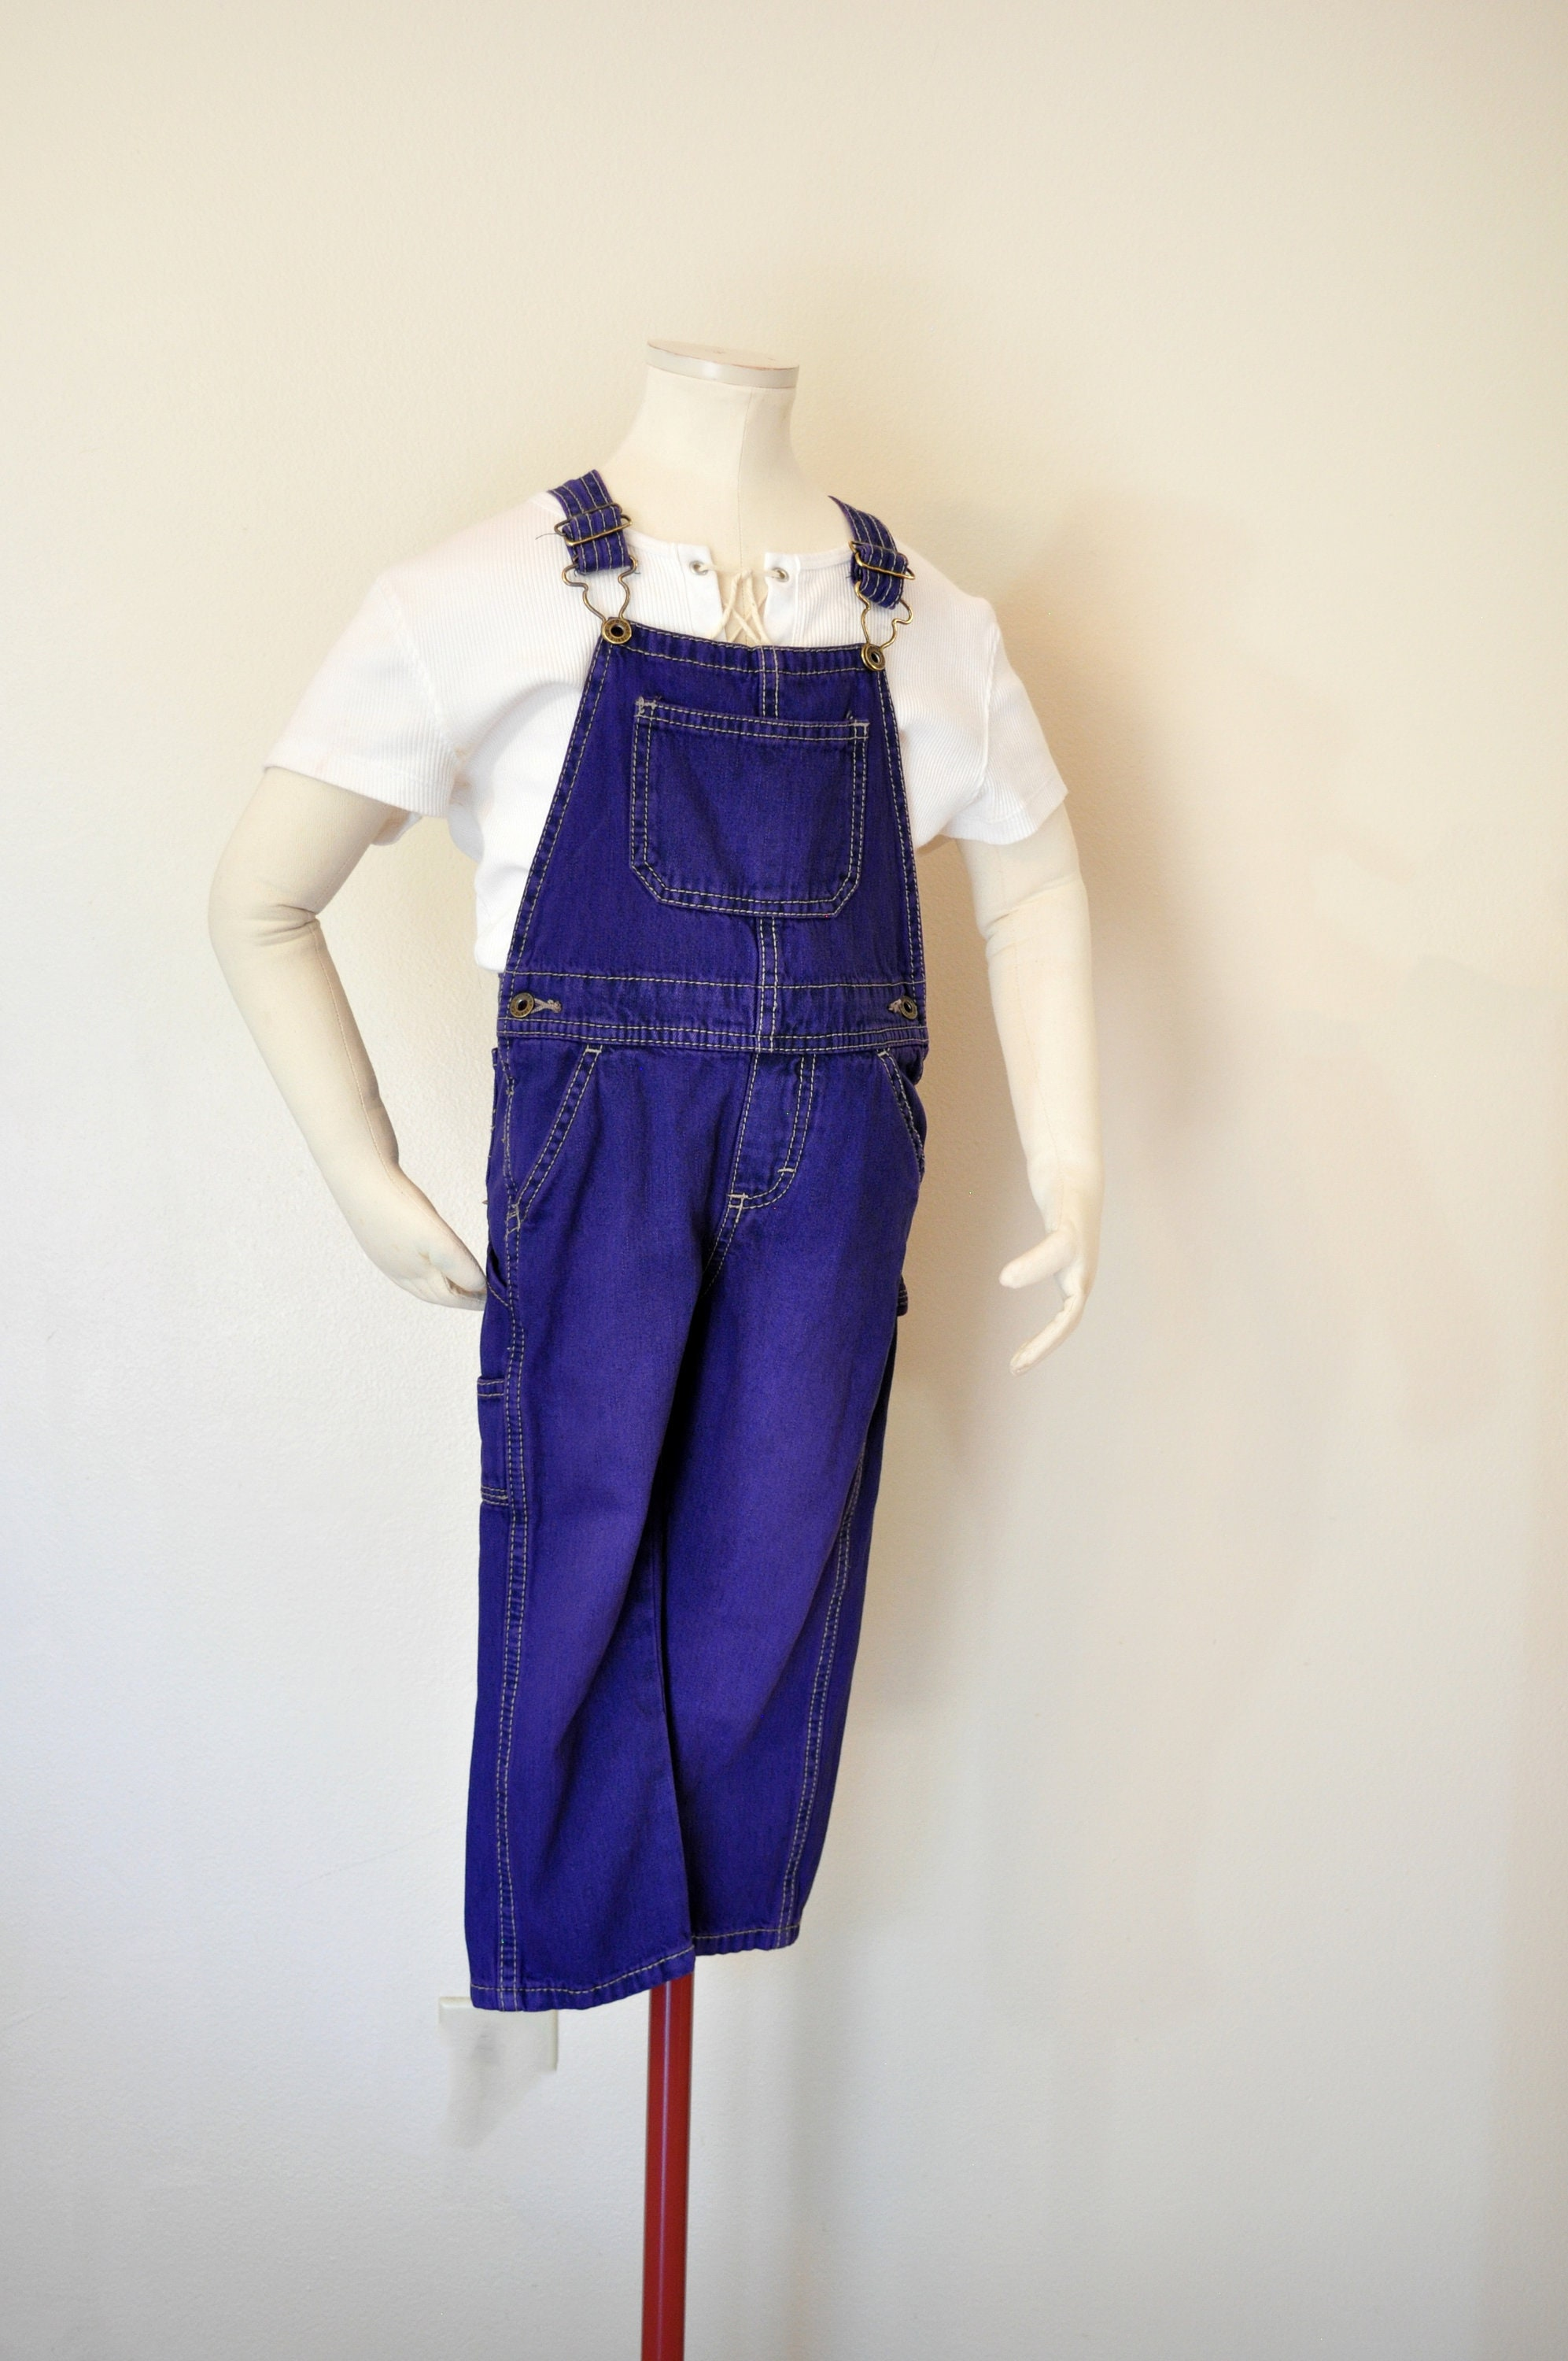 Vintage Overalls & Jumpsuits Purple Kids 4T Year Bib Overalls - Violet Dyed Upcycled Wrangler Denim Overall Pants Boys Girls Child Size 4 Years  22 Waist X 15 L $30.00 AT vintagedancer.com